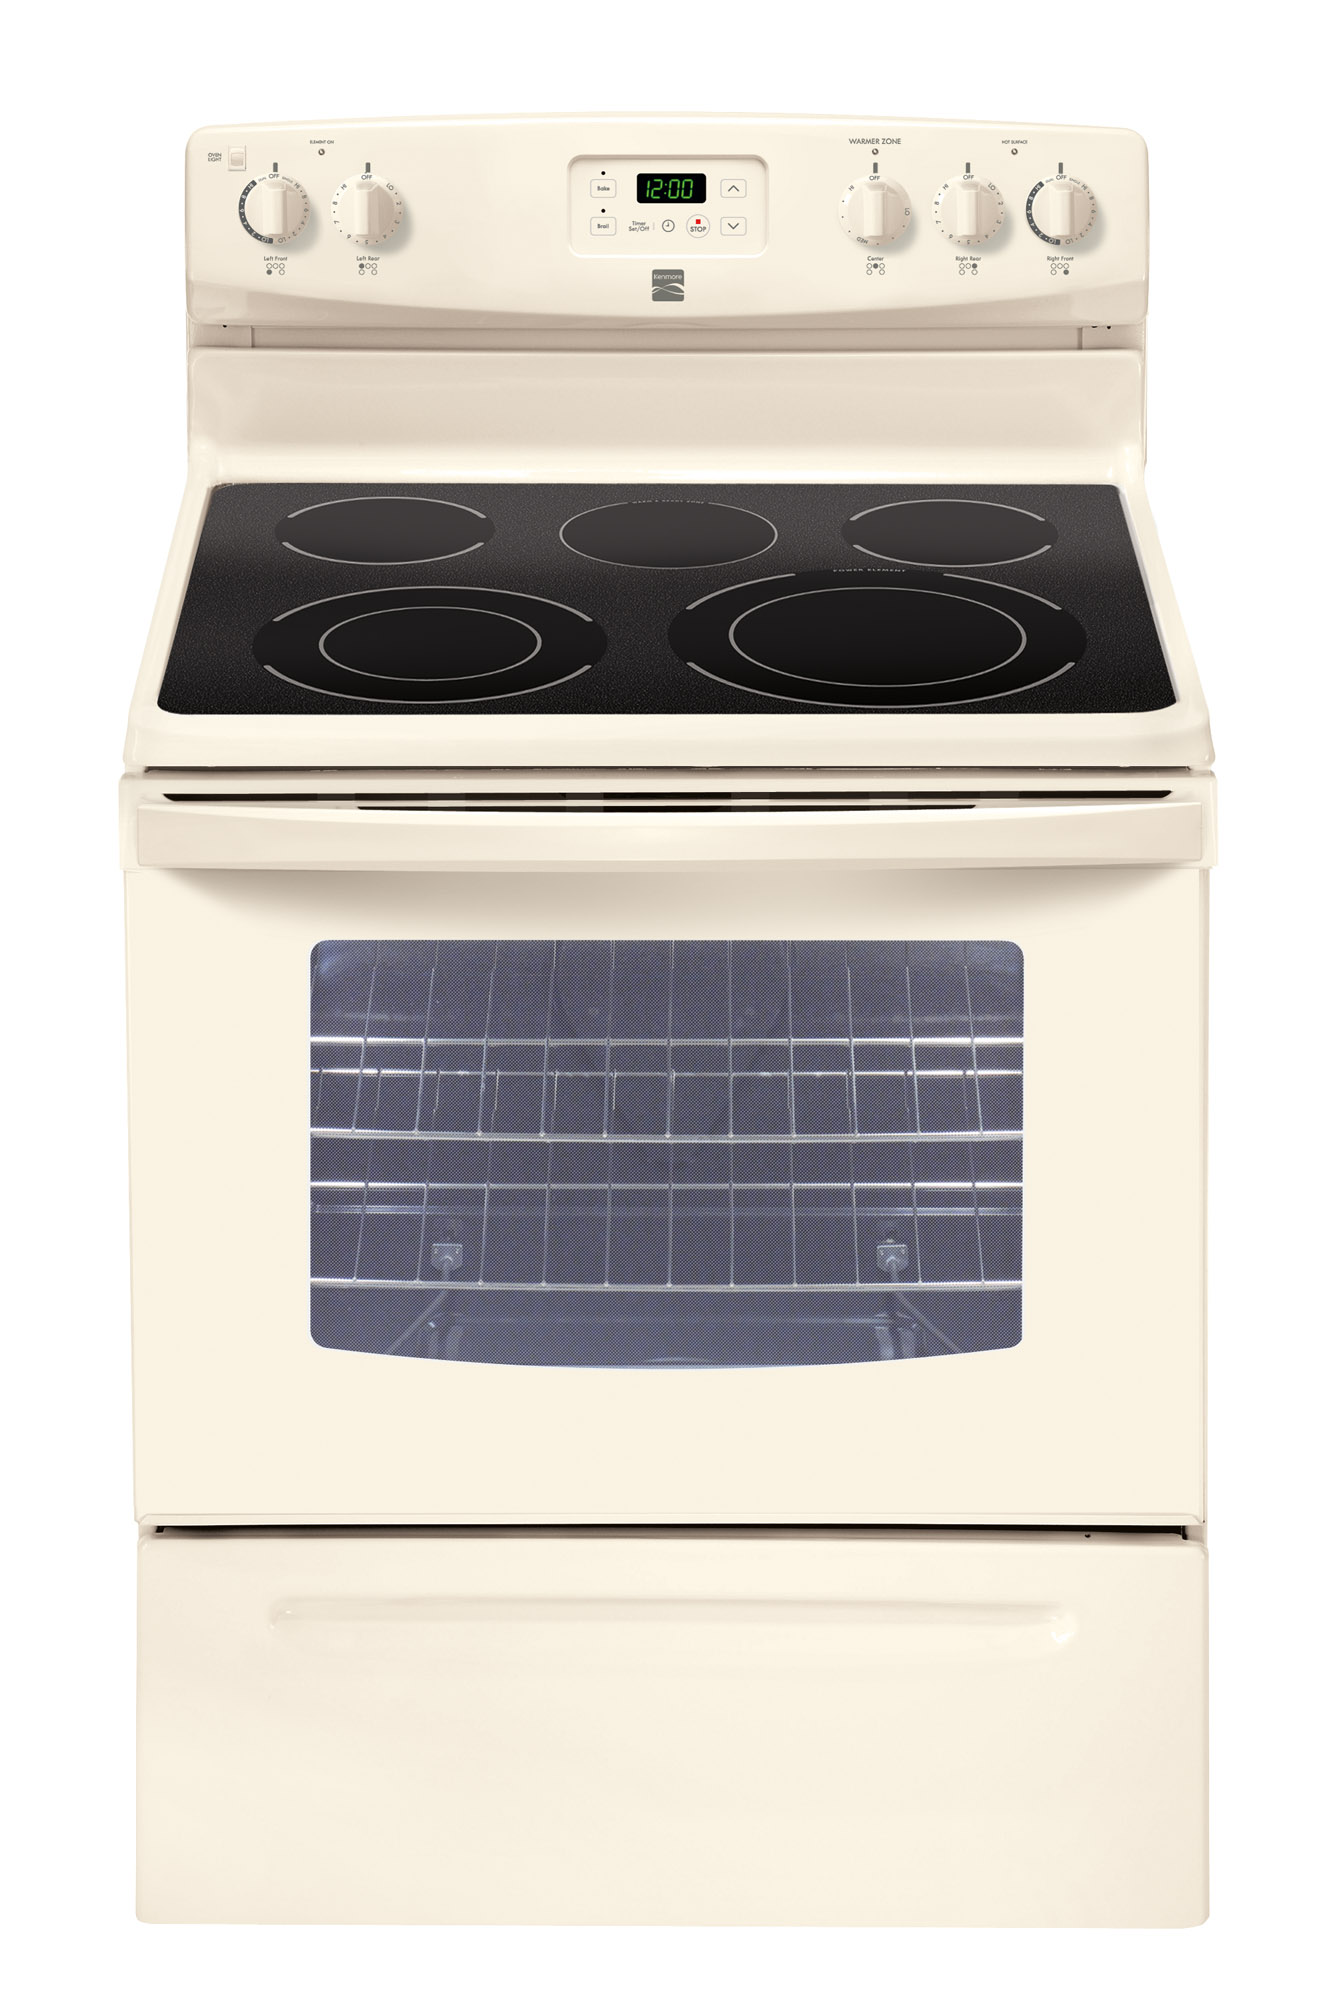 Kenmore Range/Stove/Oven Model 790.91414015 Parts